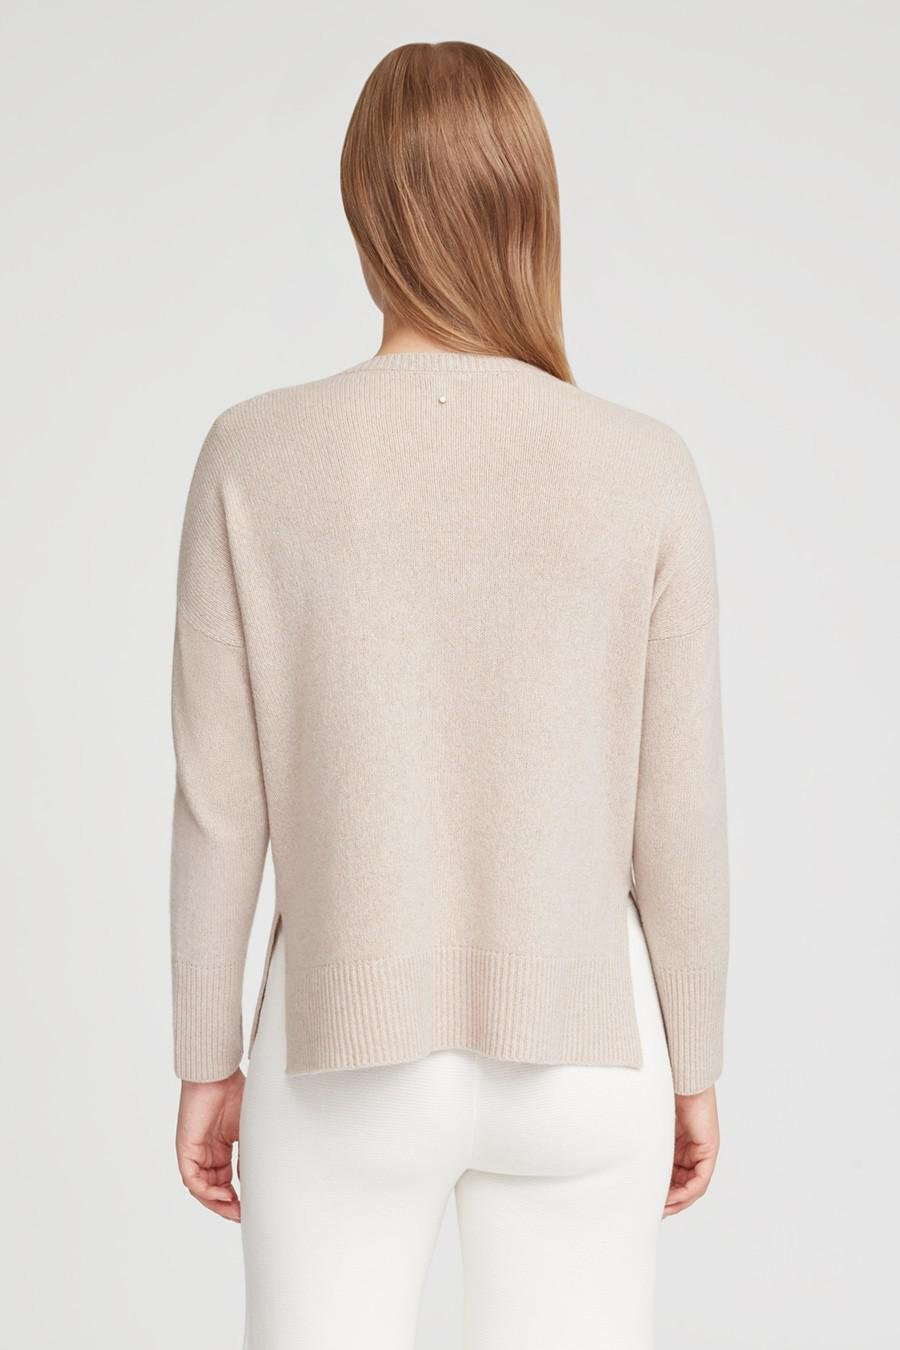 Women's Recycled Crewneck Sweater in Beige | Size: 2